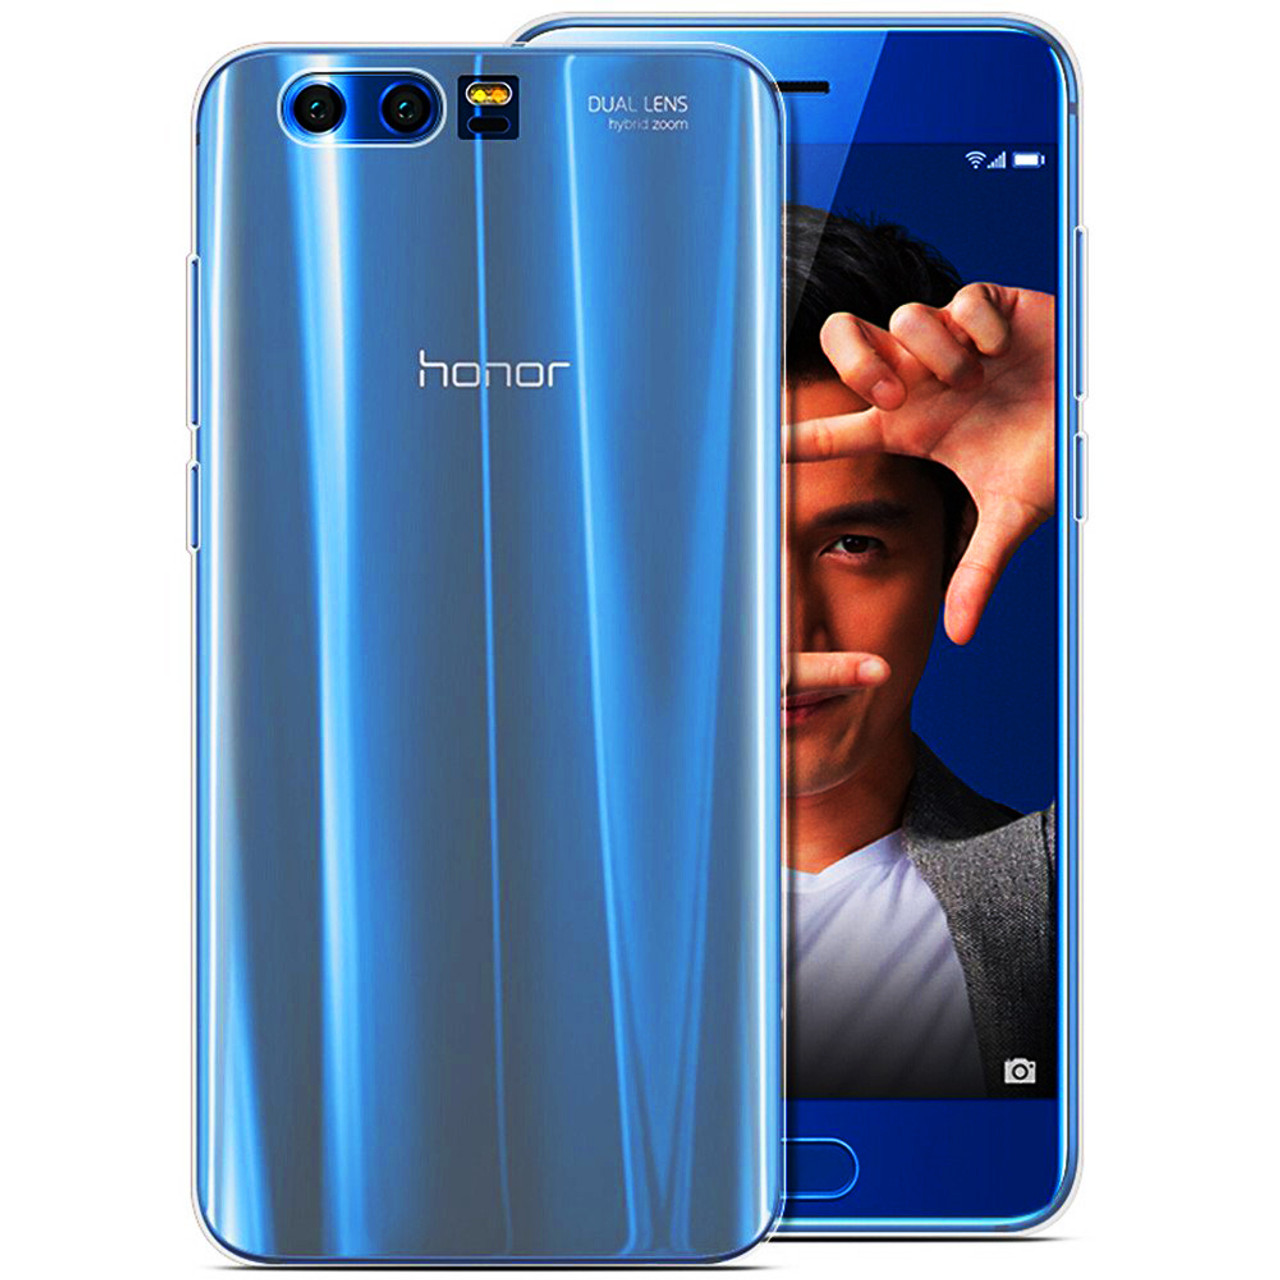 official photos 131d8 3e83a for Huawei Honor 9 /Honor 9 Premium Case Slim Crystal Clear Transparent  Soft TPU Cover Silicon Case Mobile Phone Skin Shell Bag